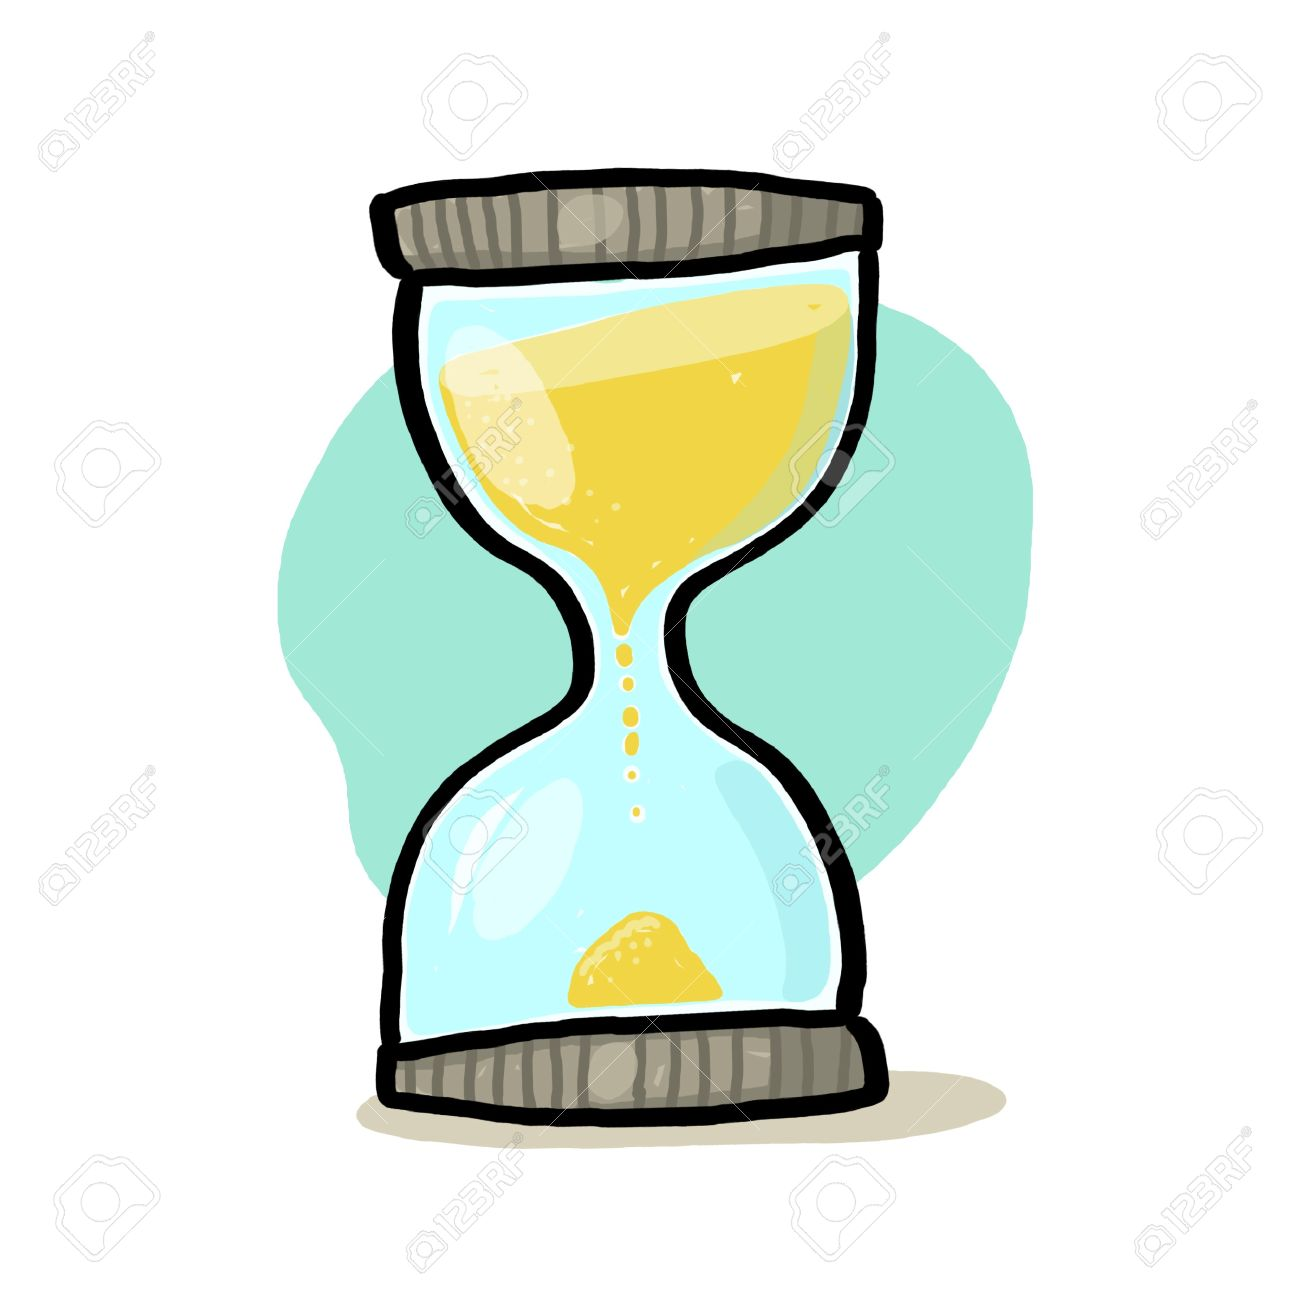 Hourglass illustration; Sand glass drawing; Time Stock Illustration - 9703450